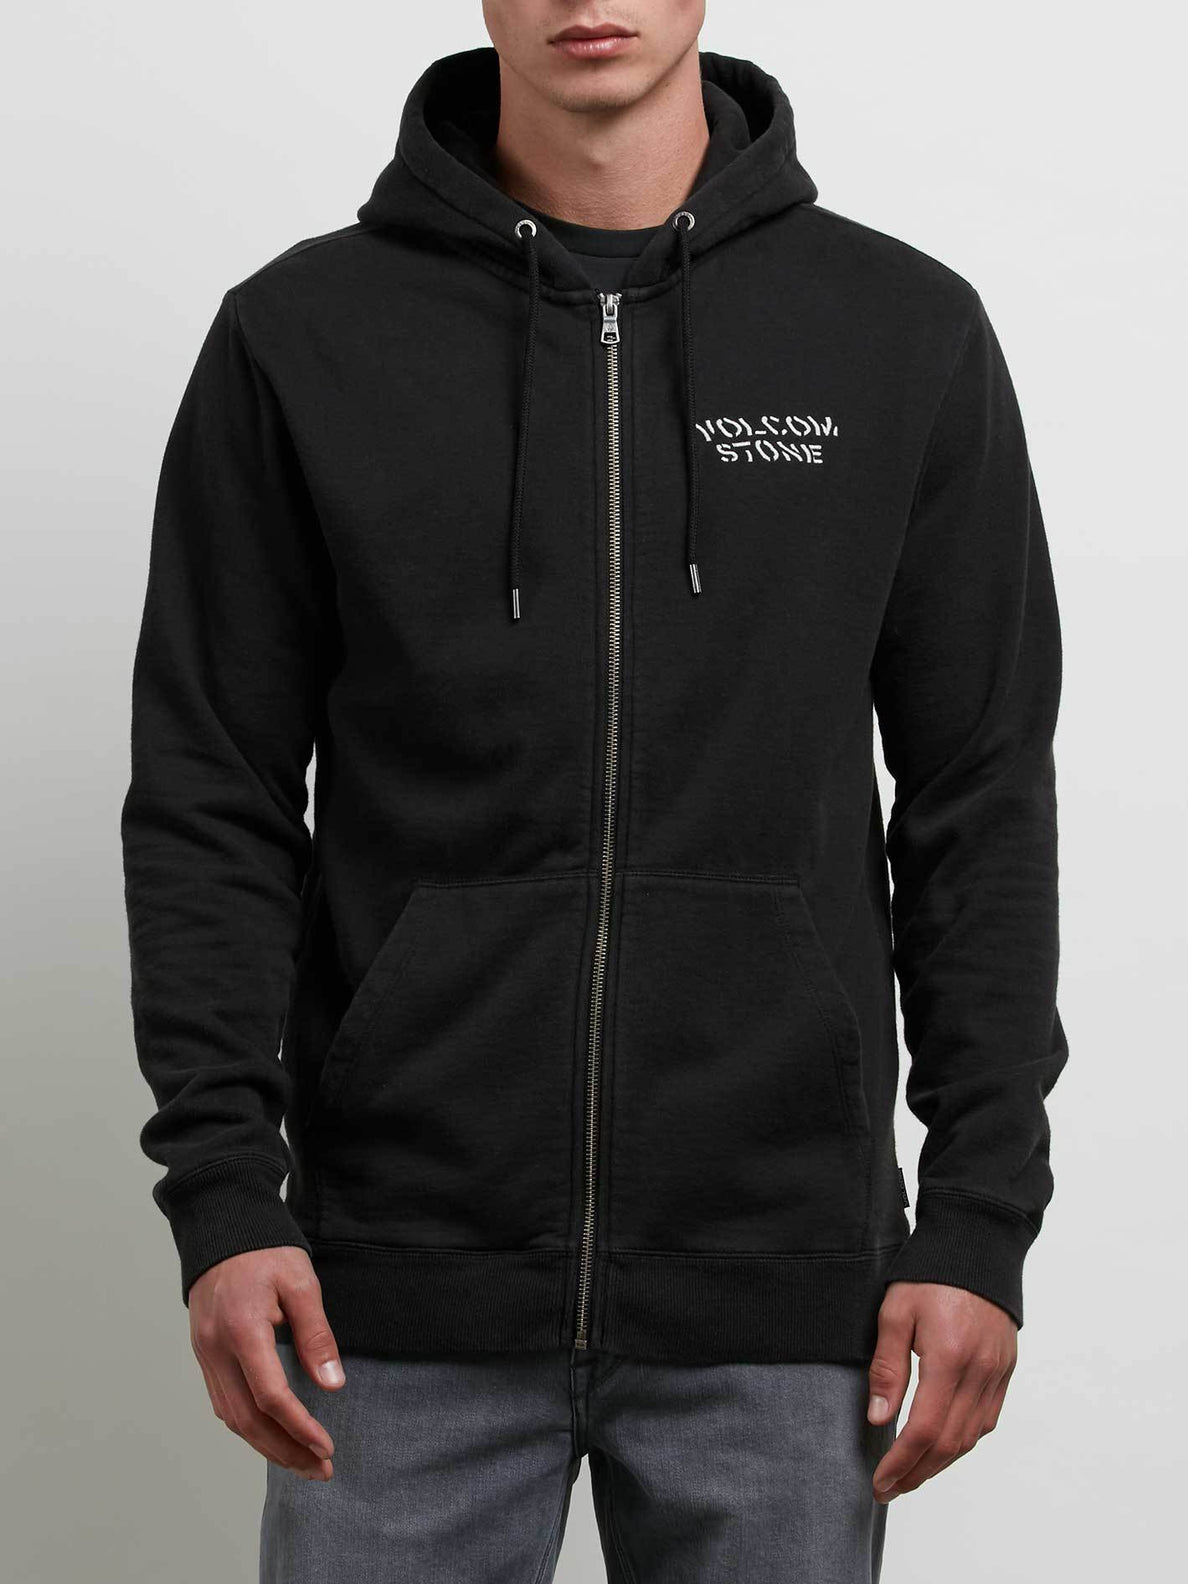 Reload Zip Hoodie In Washed Black, Front View